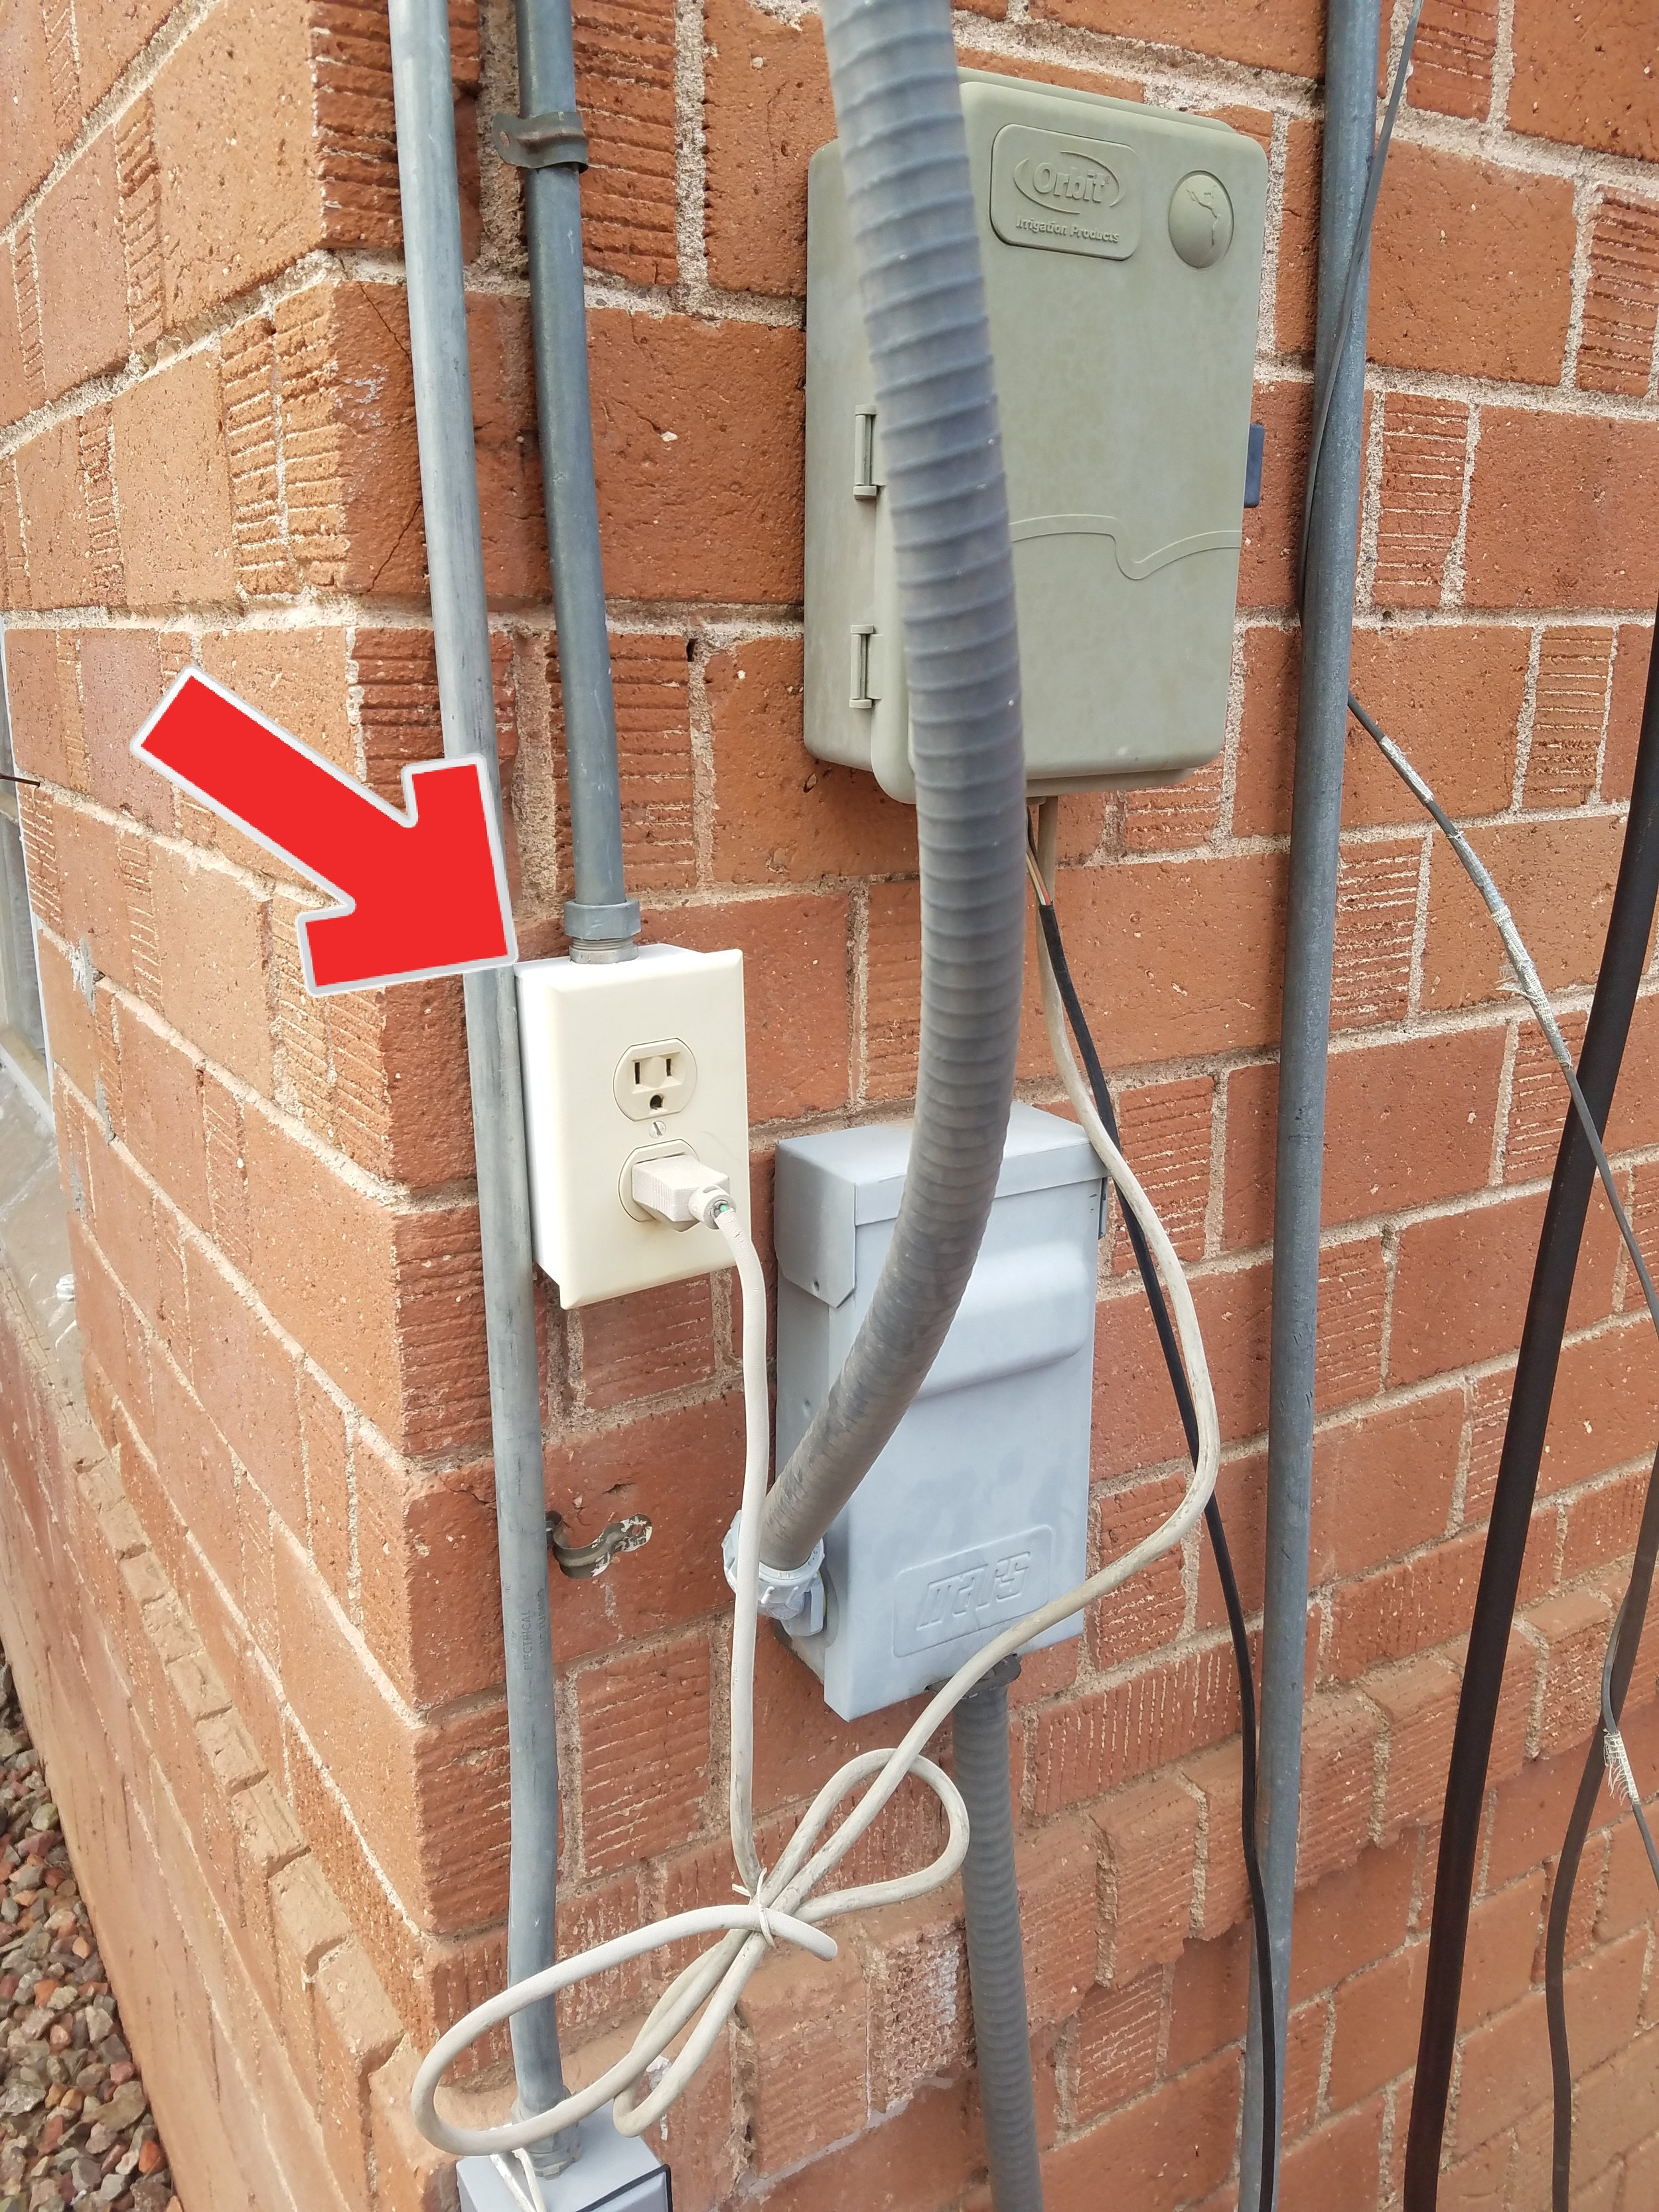 Proper exterior receptacle? Not even close. This is wrong in so many ways. Electrical hazards are among the top issues on older homes.